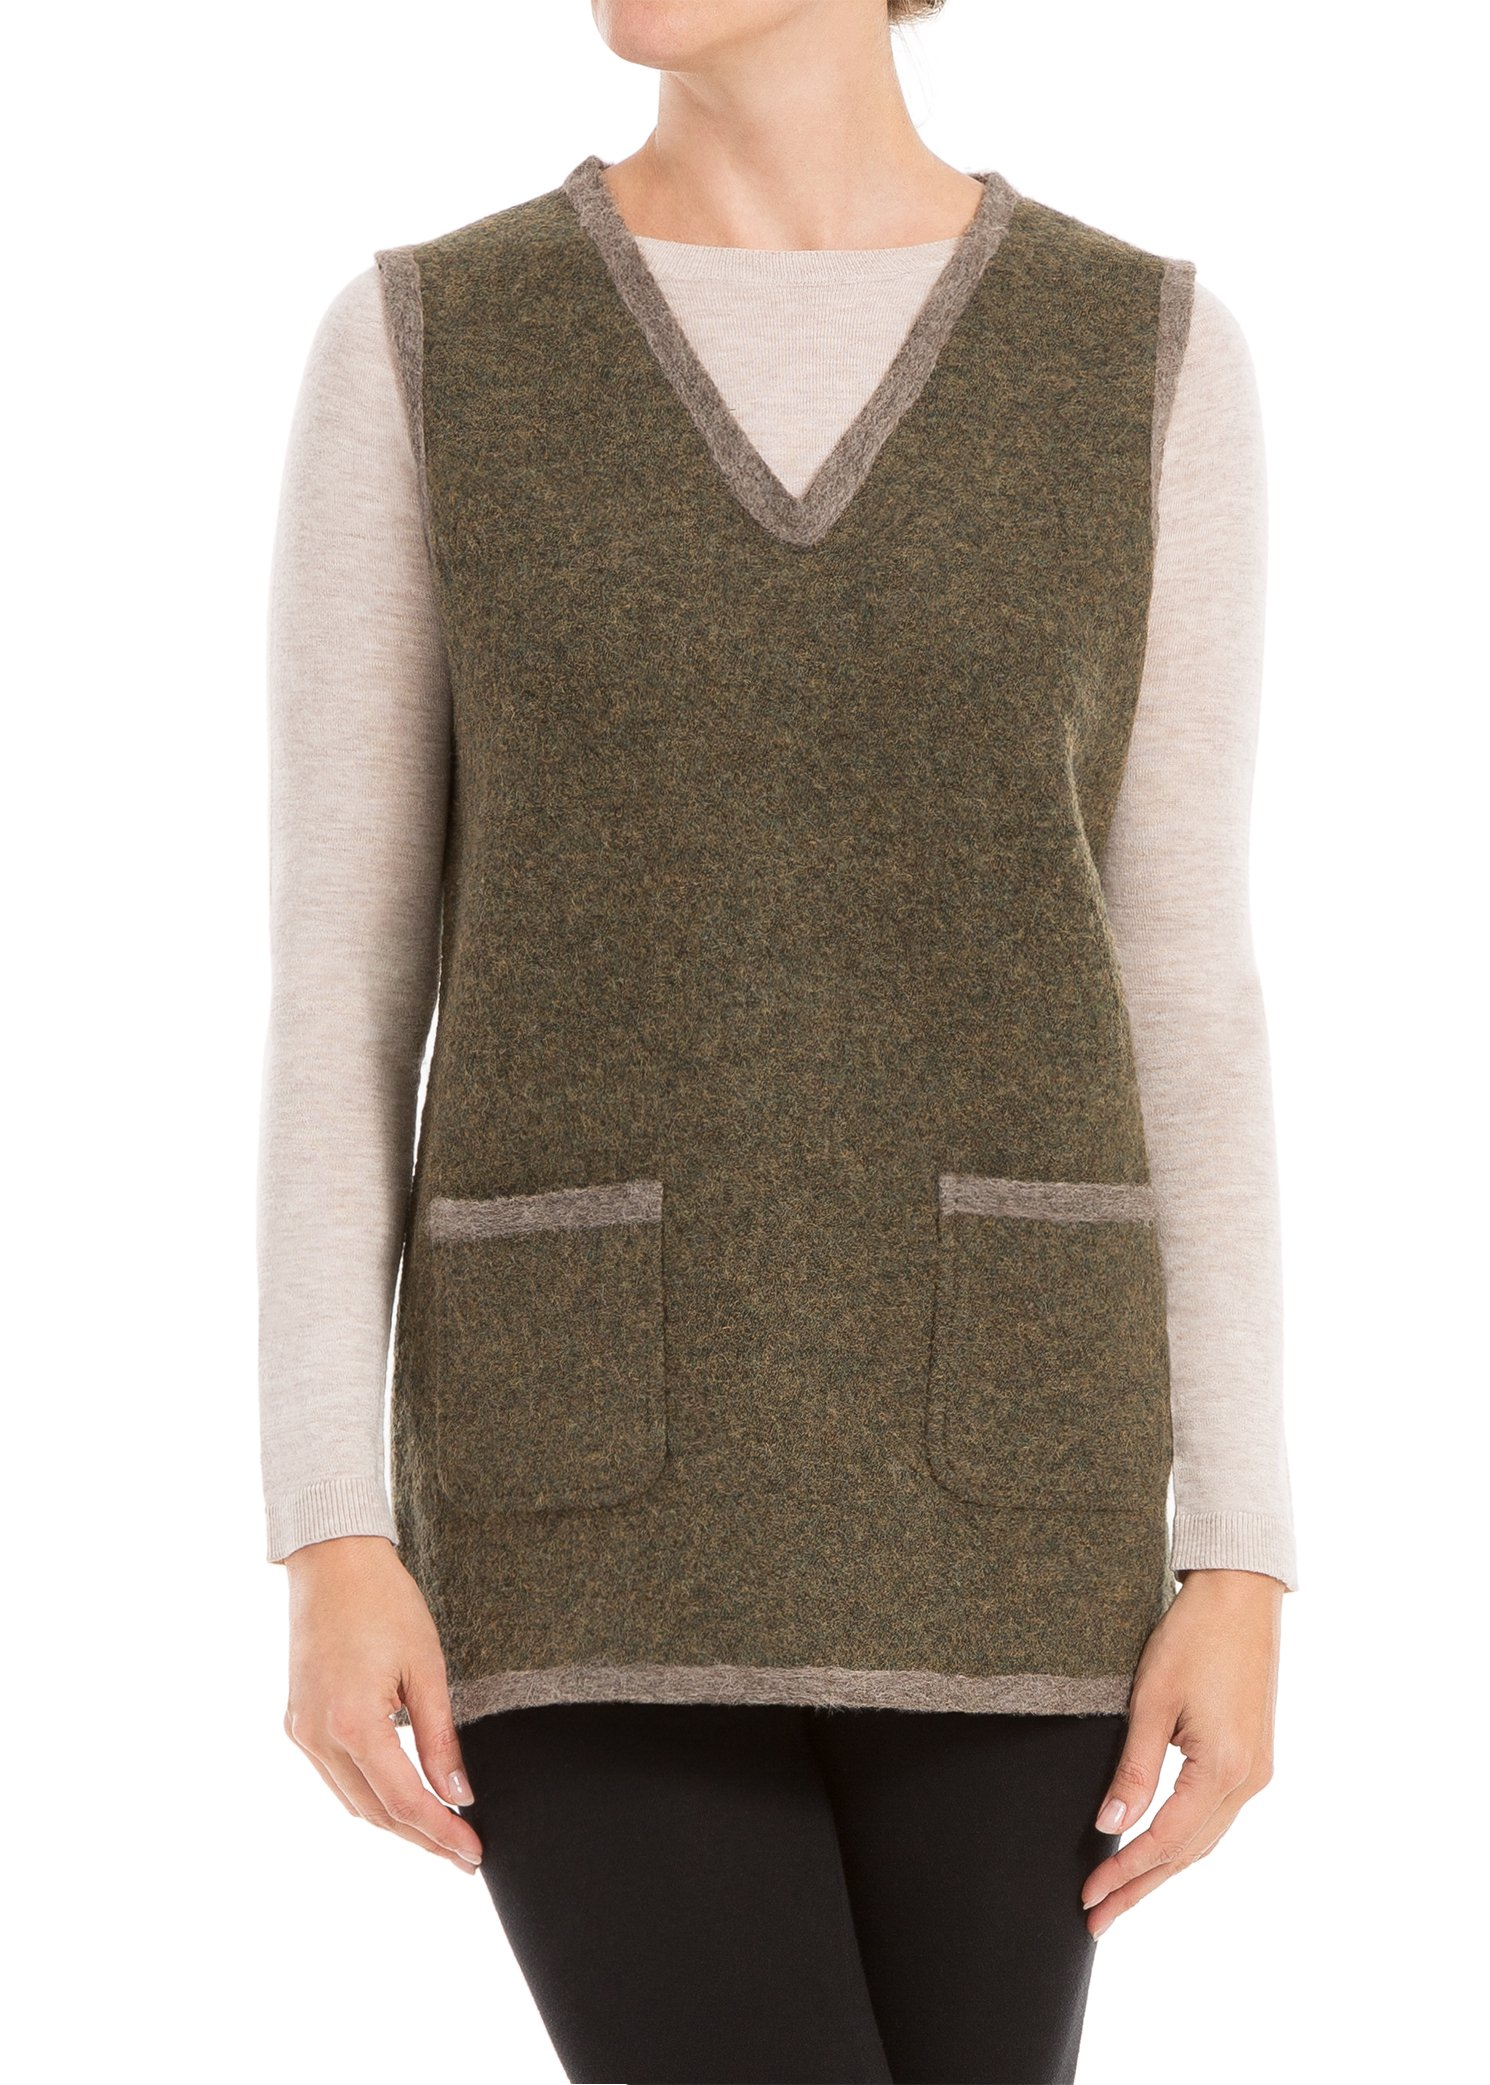 Max Studio by Leon Max Heathered Wool Needlepunched Vest - 6207Y45-DGRNHOAT-L